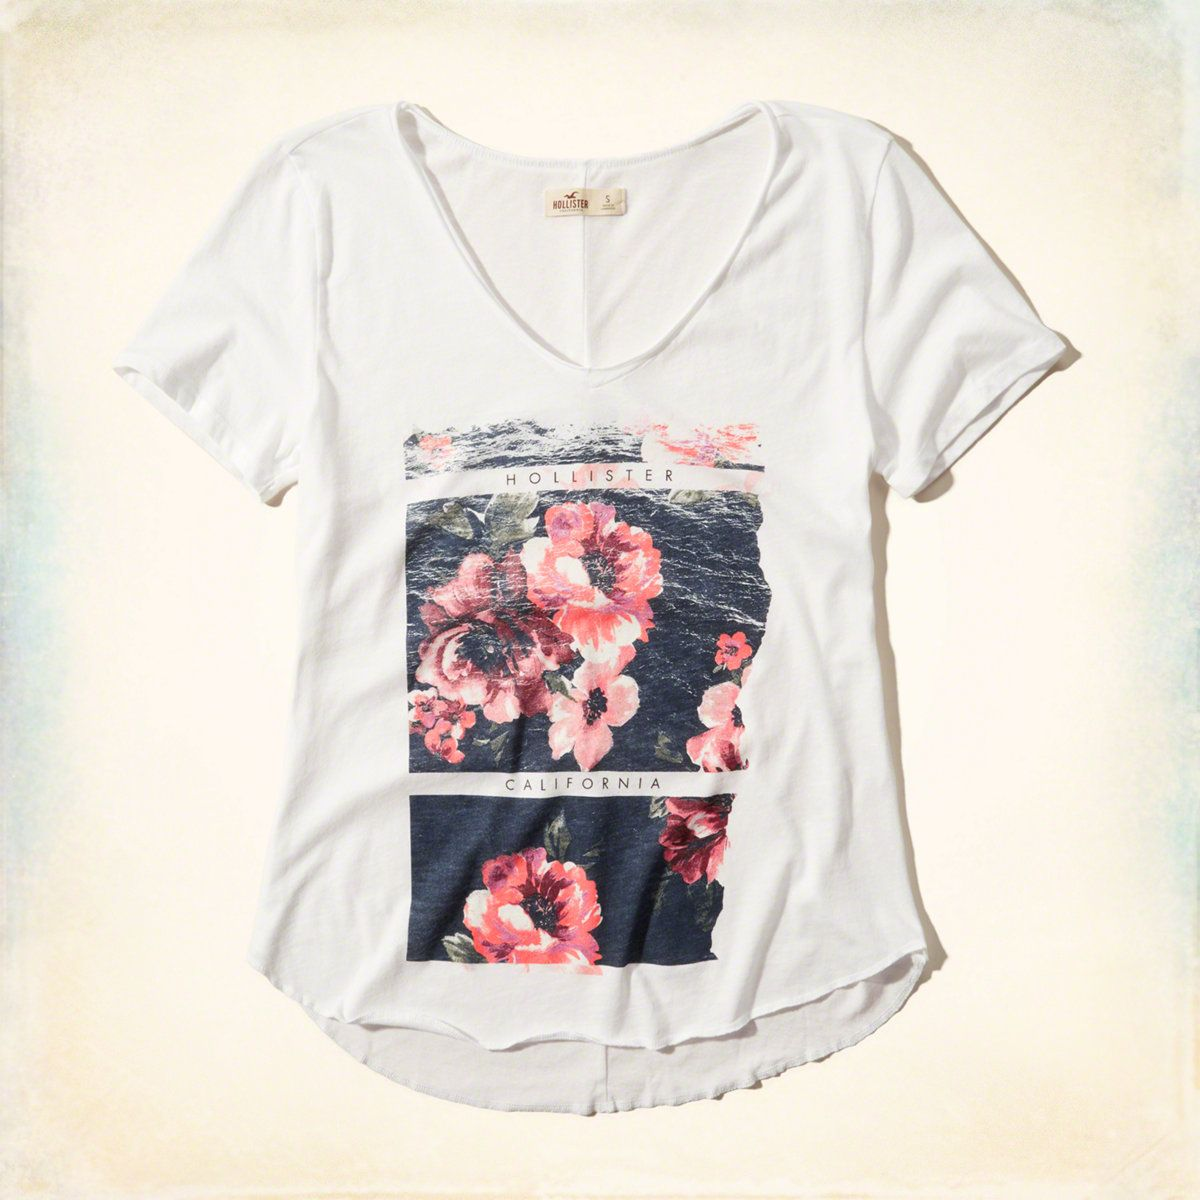 Girls Hollister Graphic Tee | Girls Tops | HollisterCo.com ...